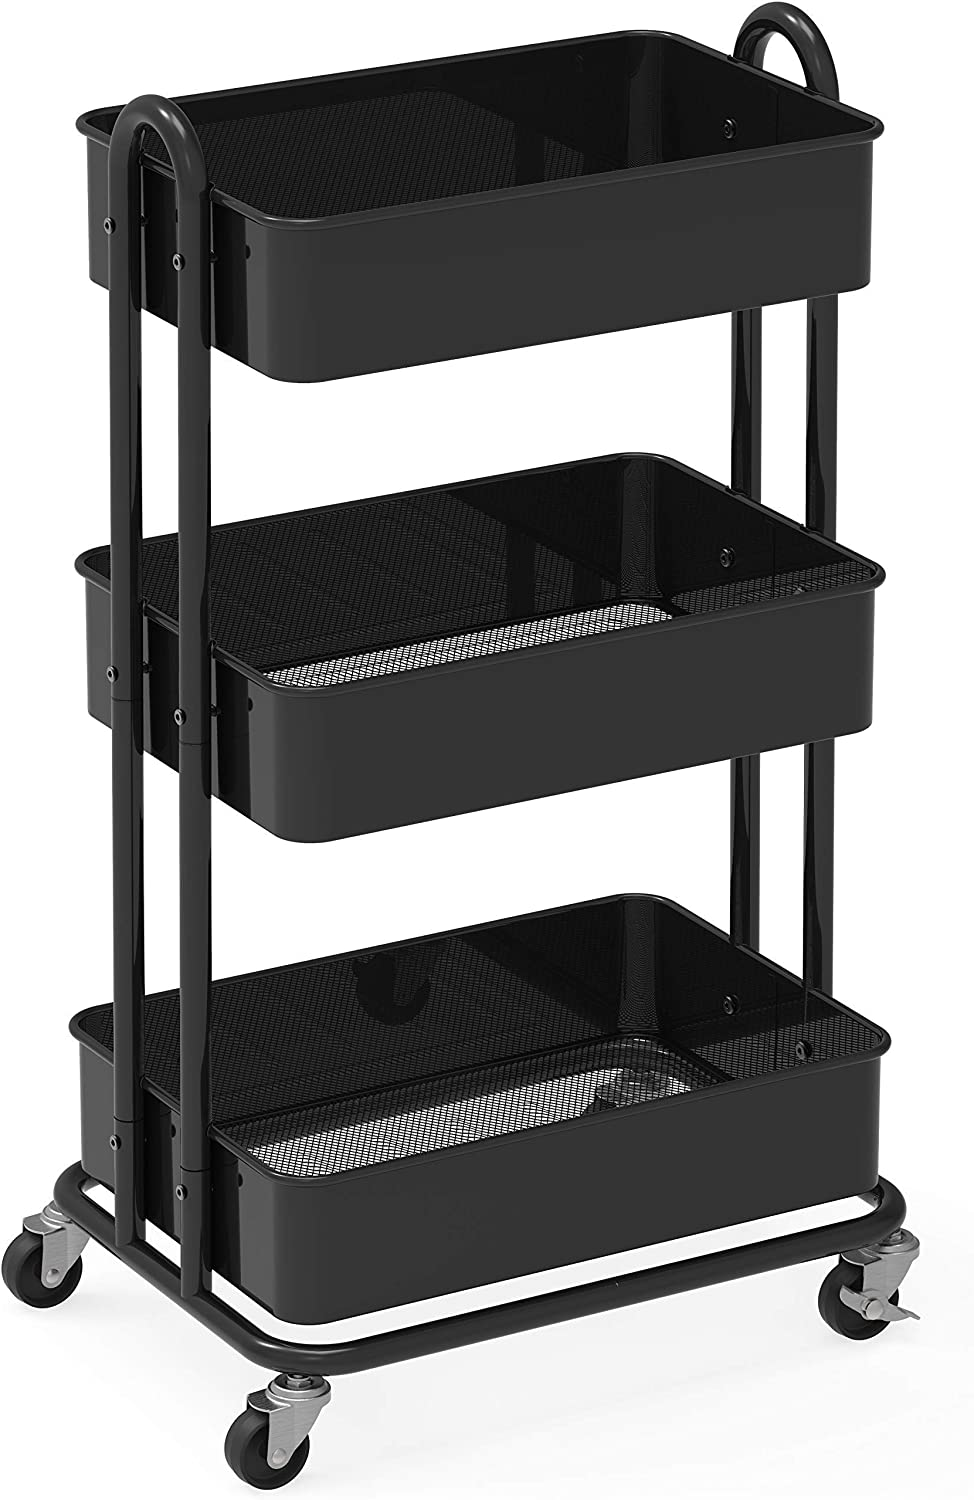 Simplehouseware Heavy Duty 3 Tier Metal Utility Rolling Cart Drawer Organizer Tray Office Products